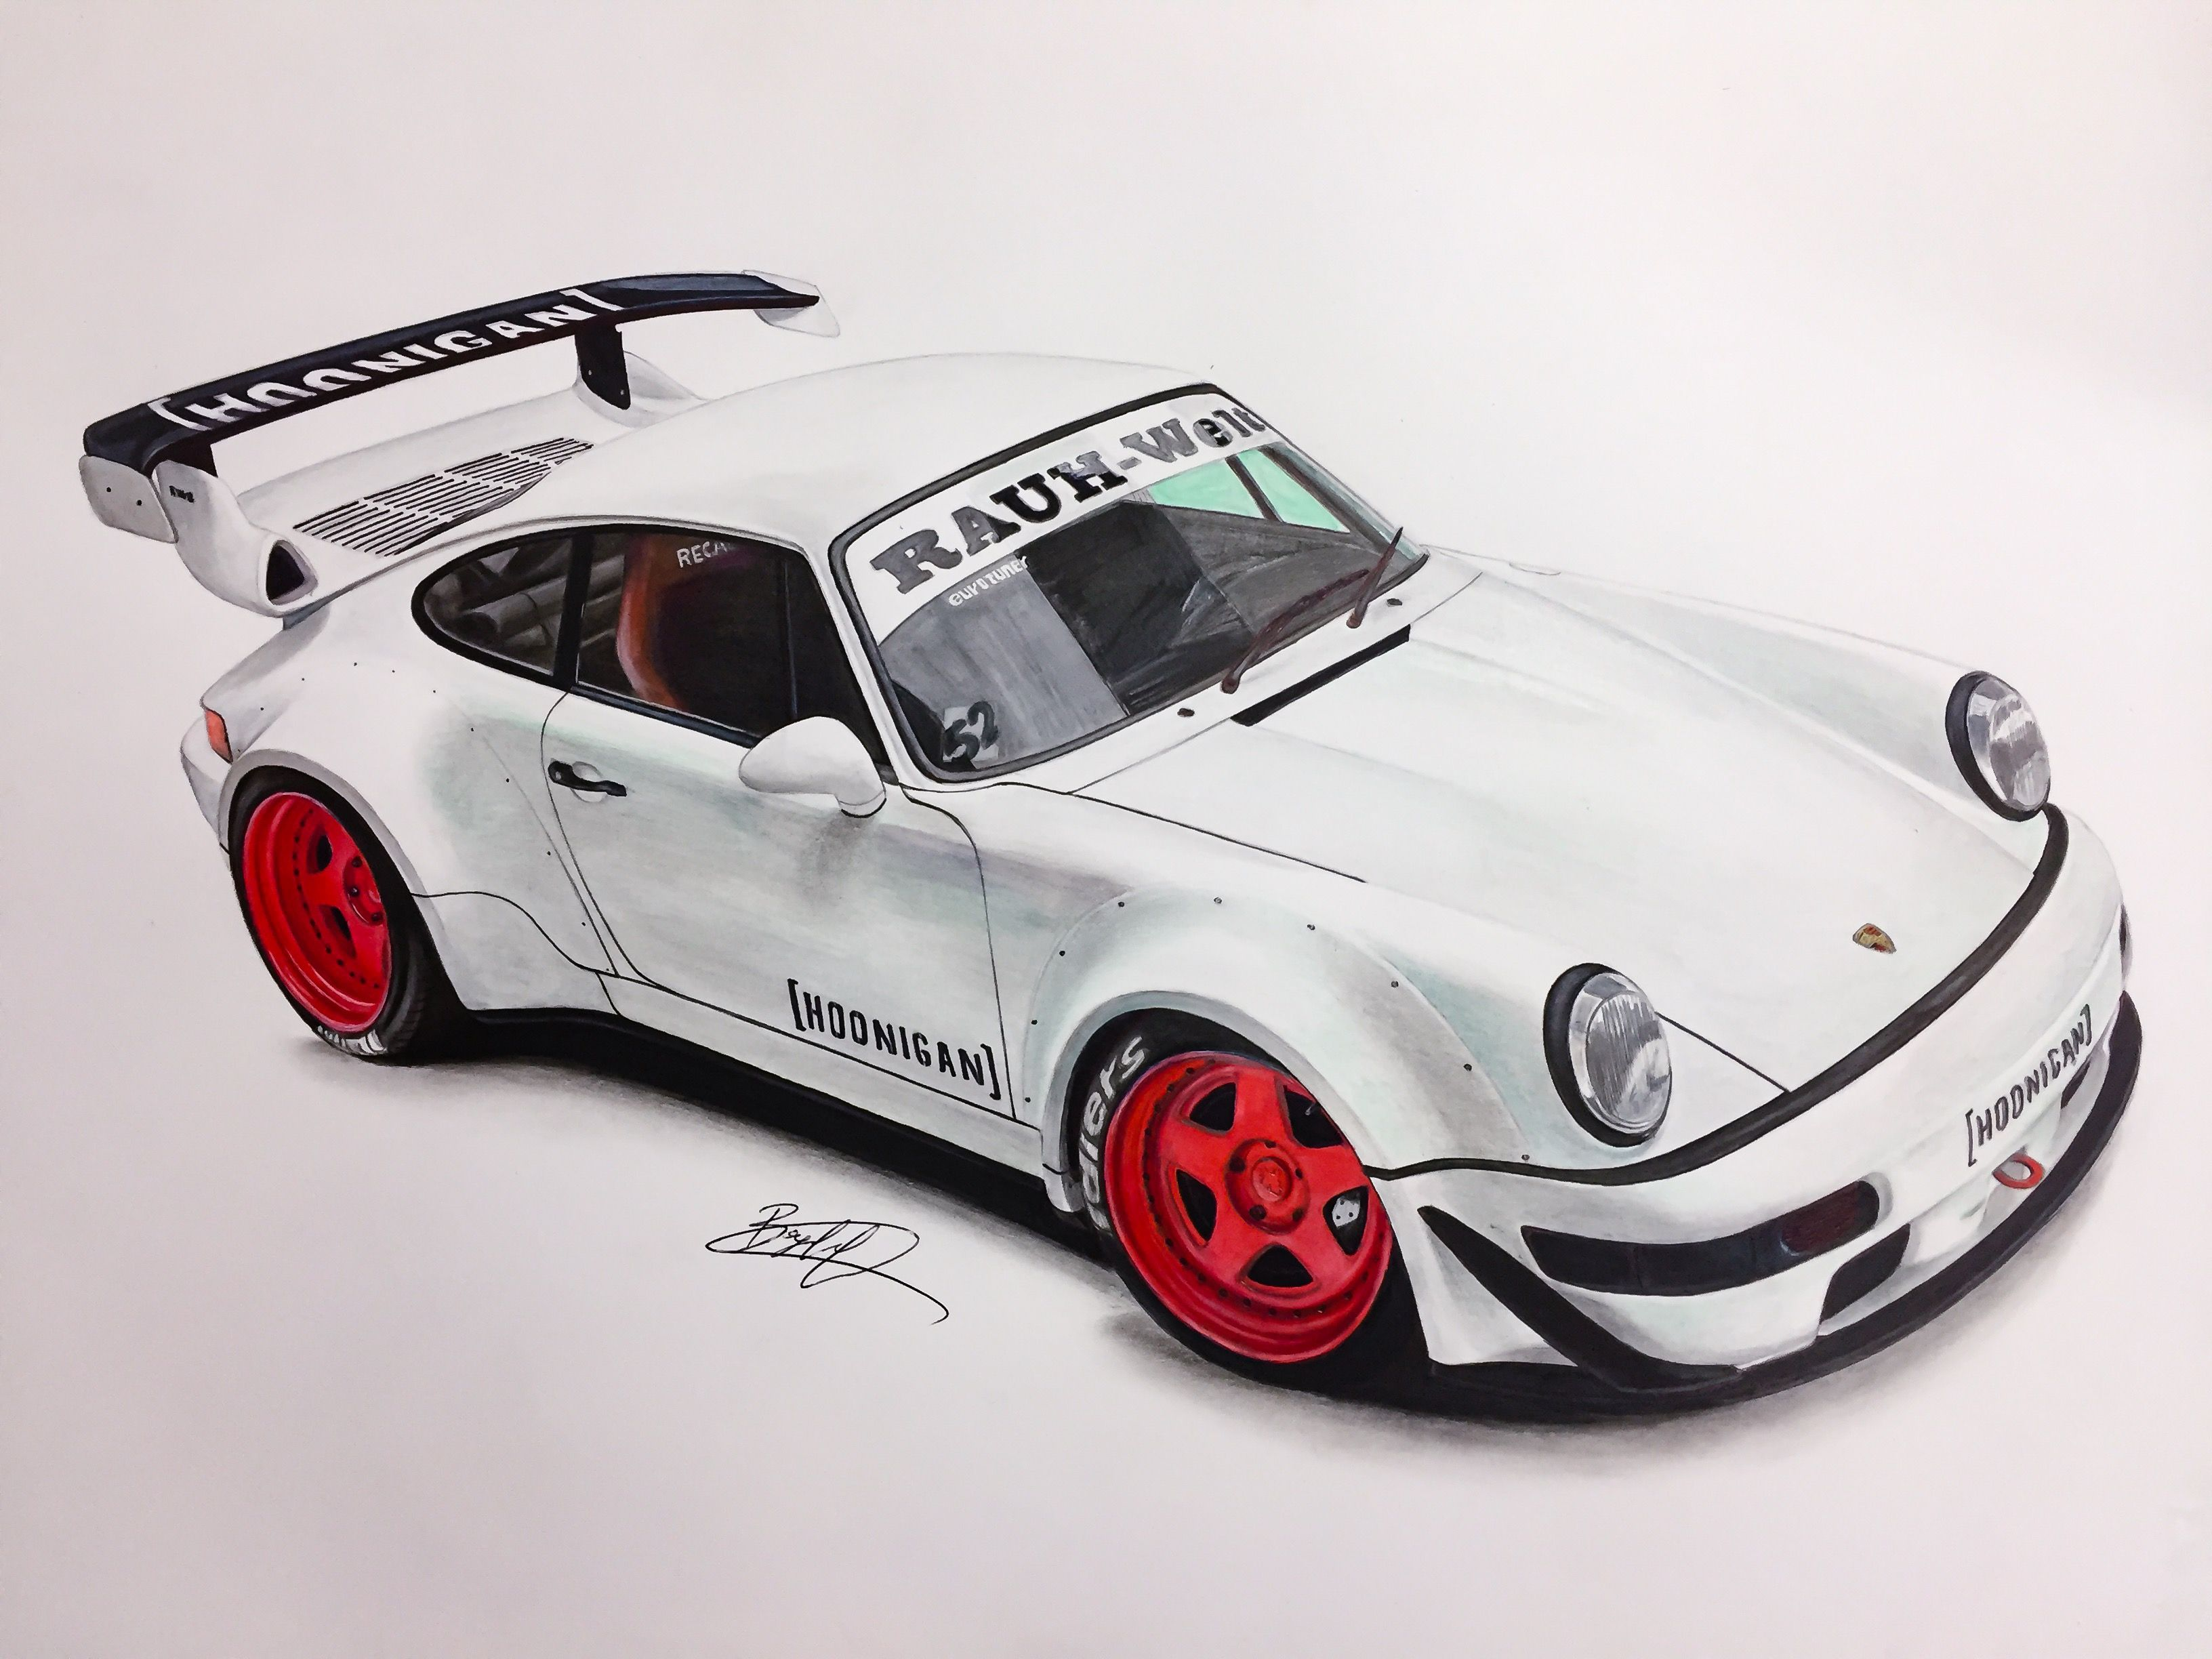 Porsche Rwb Hoonigan Brian Scotto Drawing Supercar By Filo